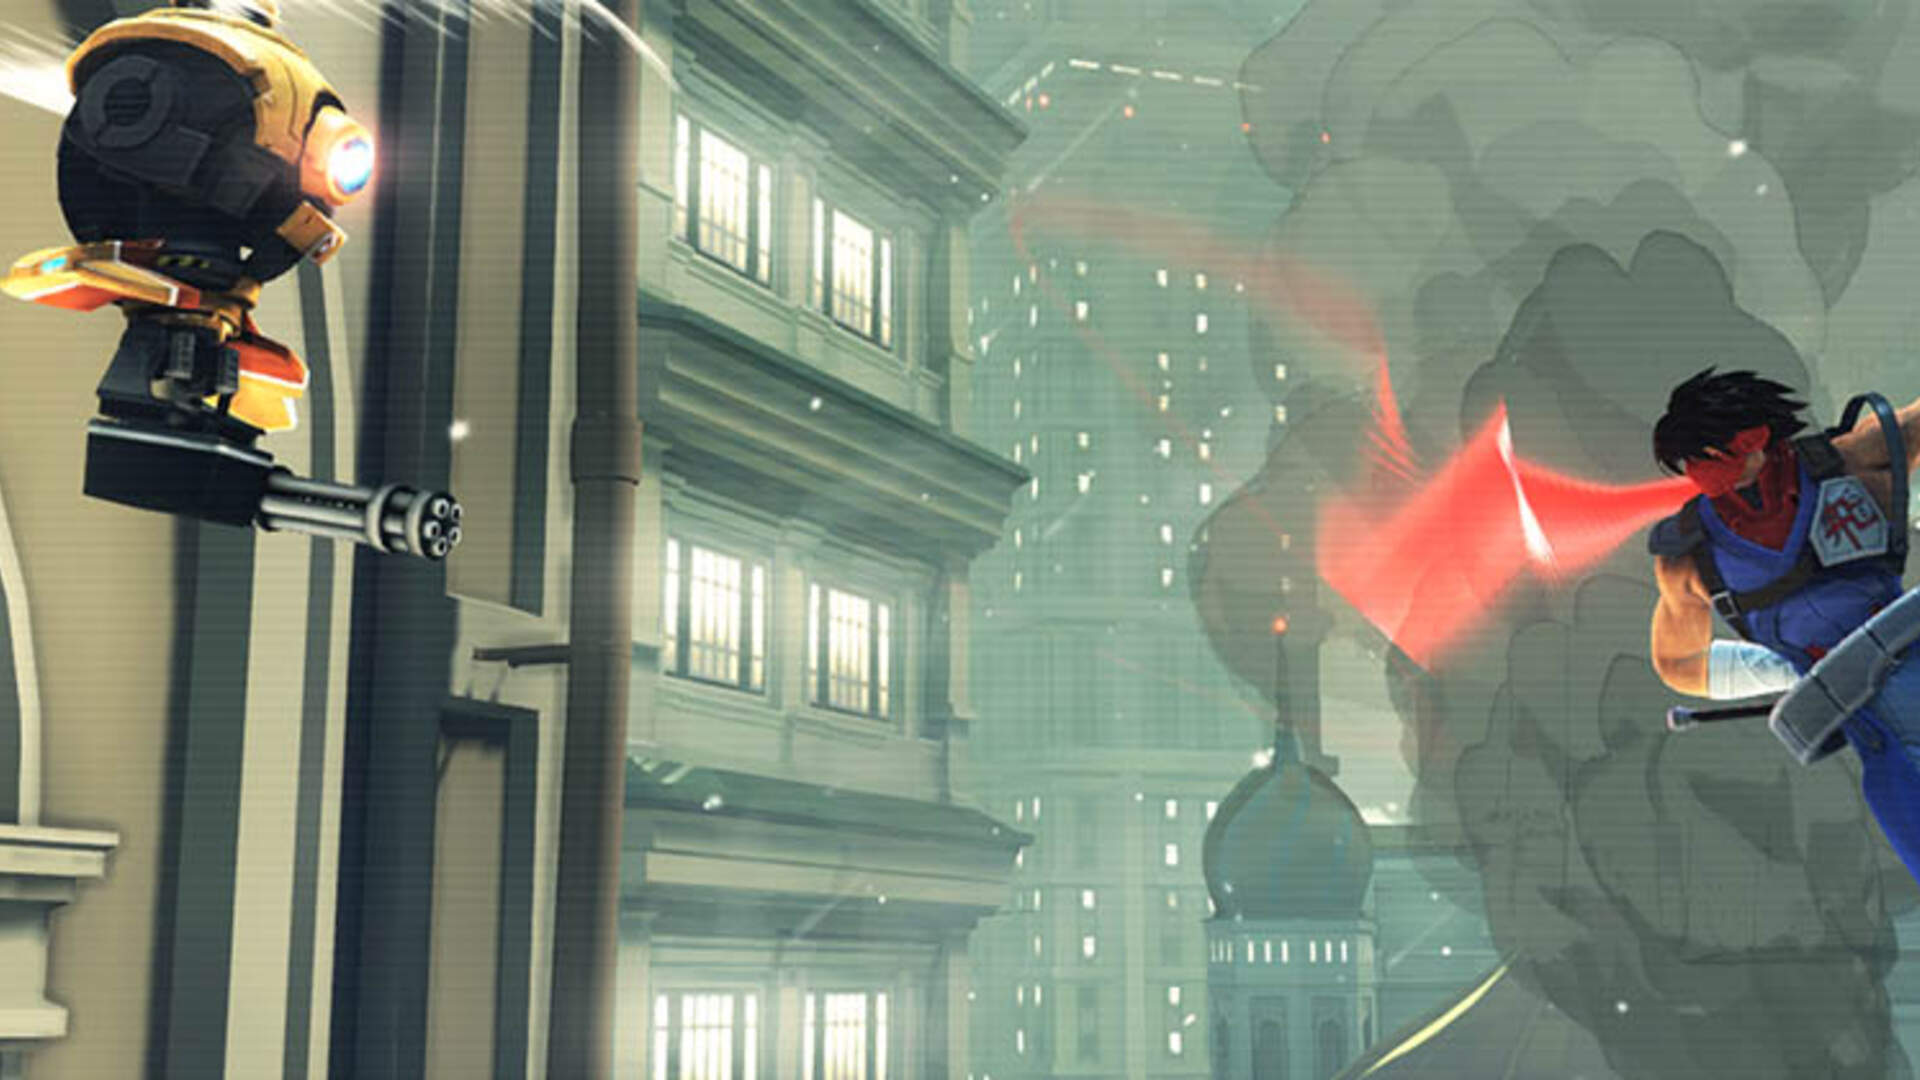 Strider Xbox One Review: Does This Familiar Reprise Rise Above Contempt?